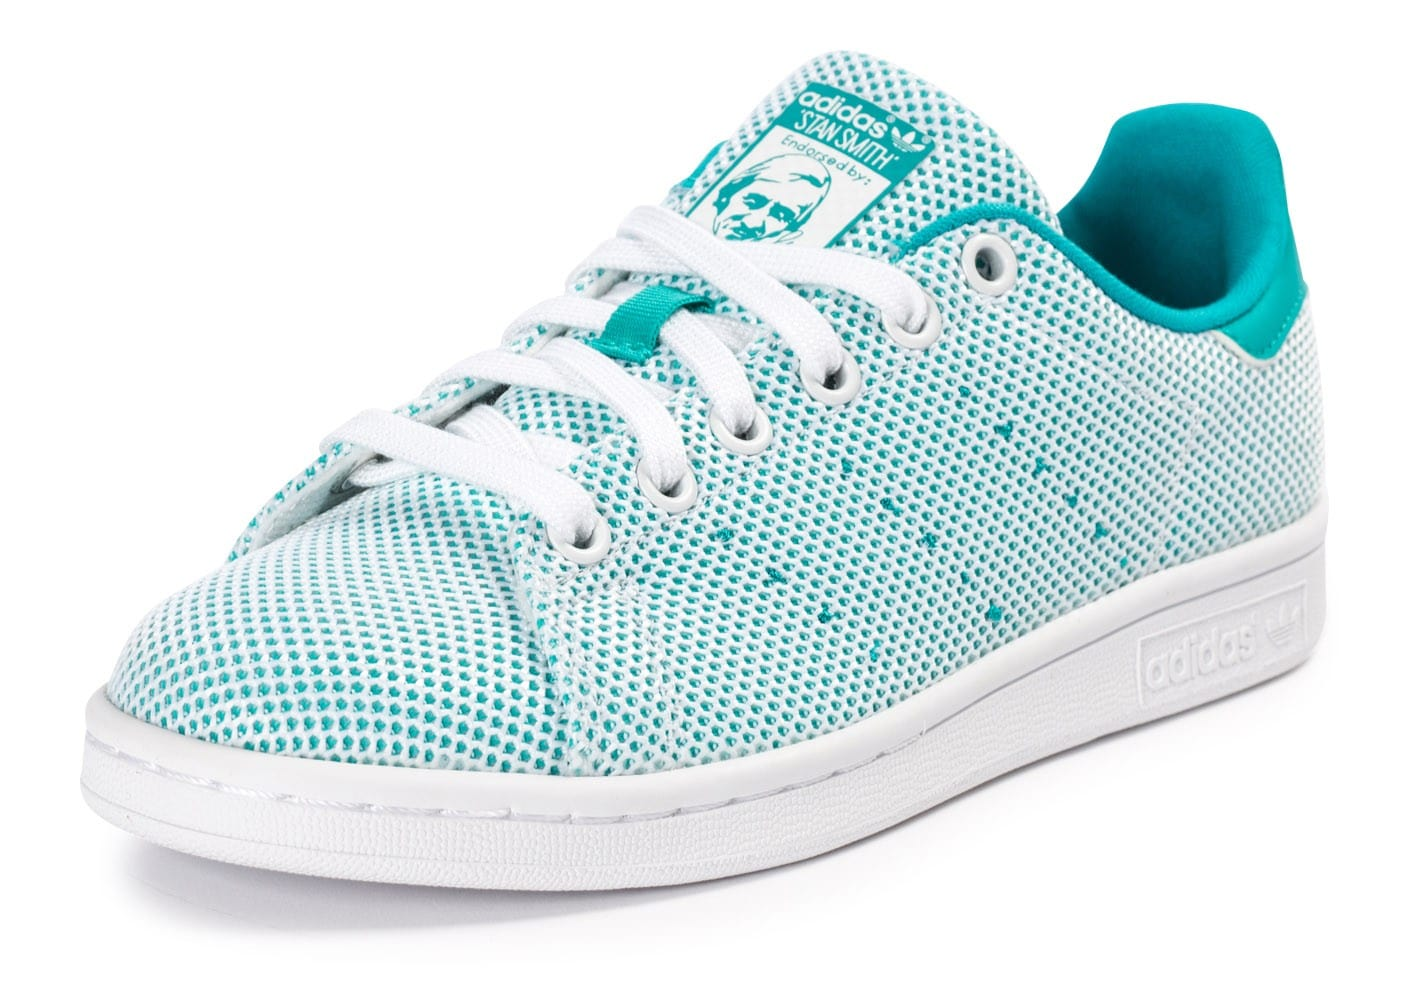 best authentic 57eb0 b8df0 ... Chaussures adidas Stan Smith Adicolor Summer turquoise vue avant ...